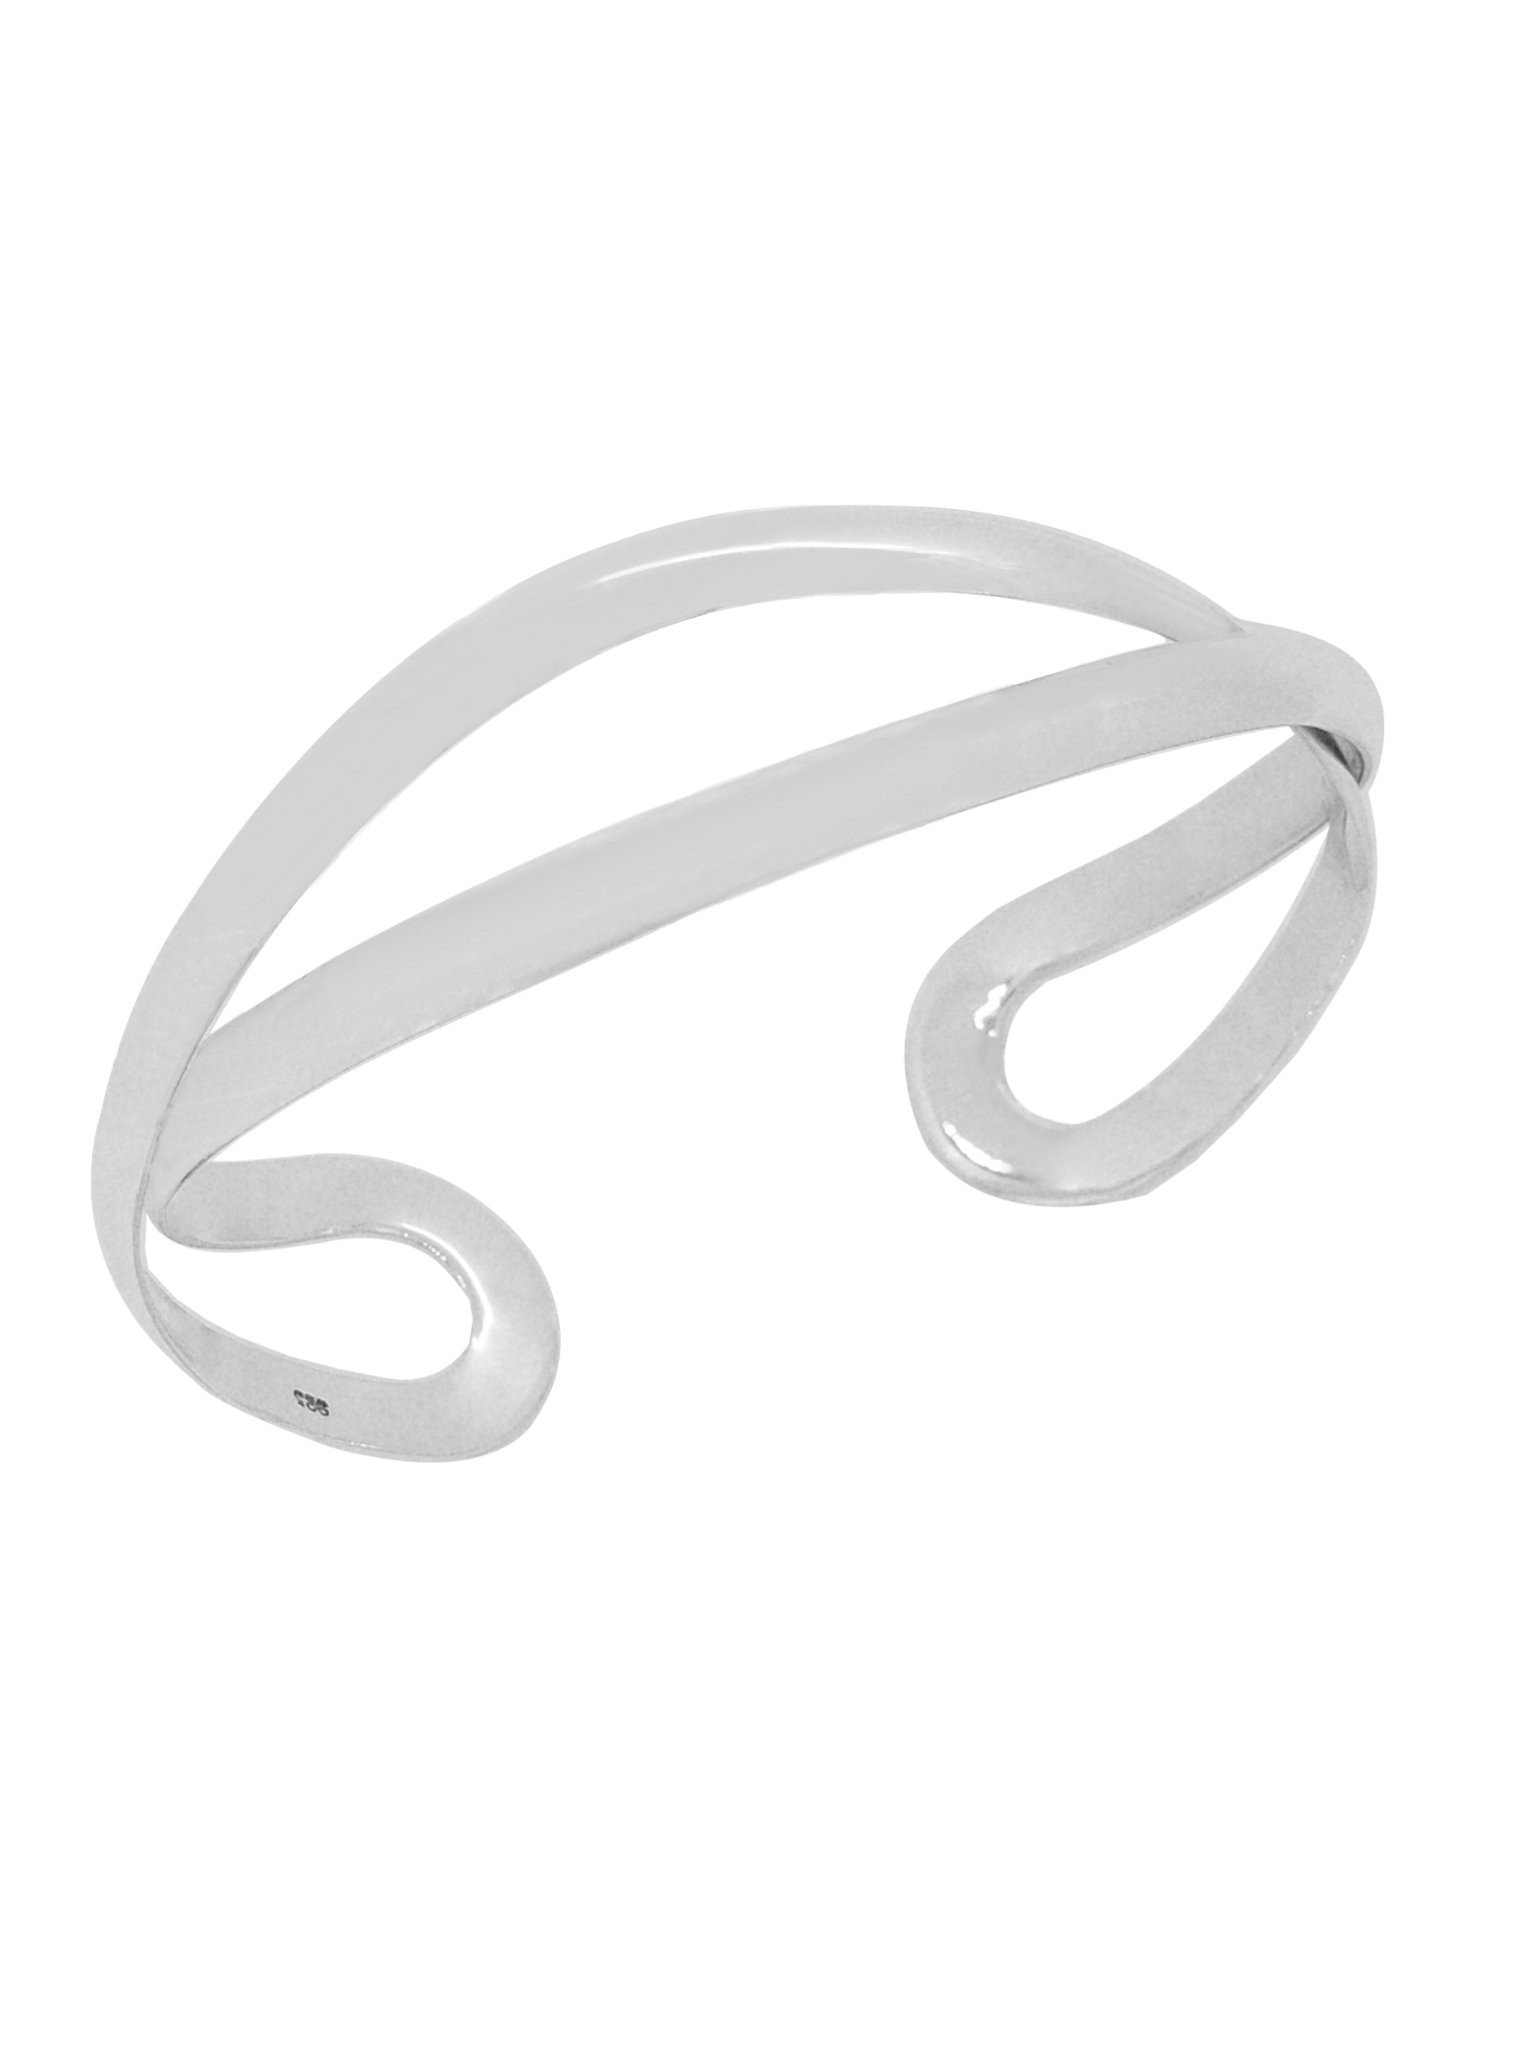 Sterling Silver Never Ending Love Infinity Cuff Bangle